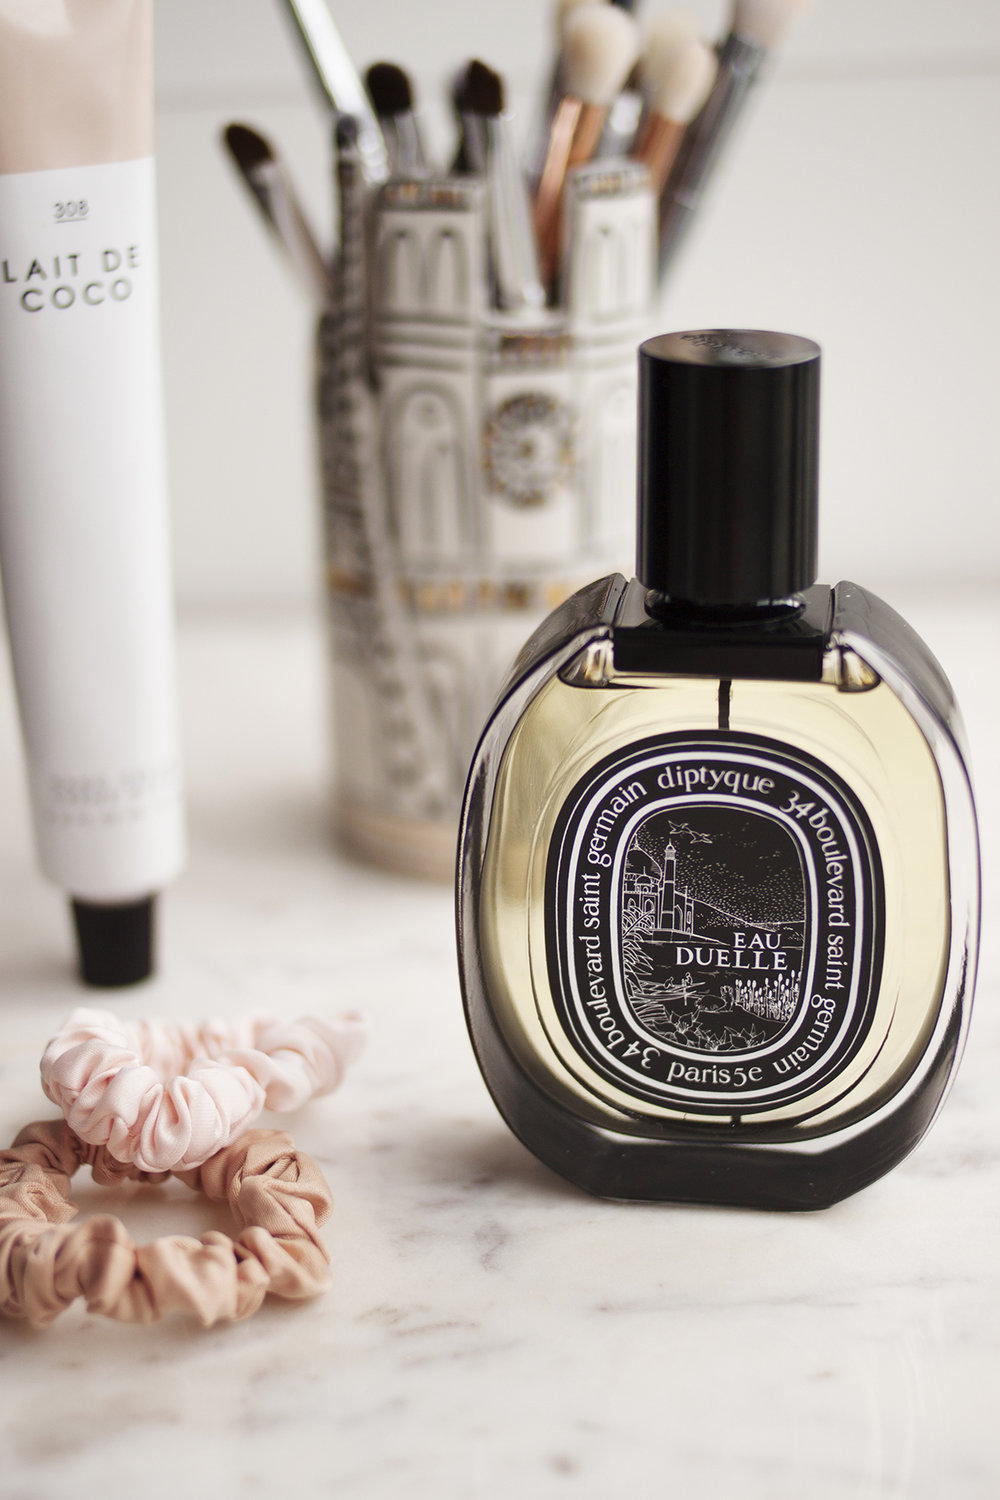 """Fragrance & Body - Maybe the most exciting thing in this entire post is Diptyque's Eau Duelle EDP (AU), which I mentioned that I fell in love with when I first smelled it a few months ago. Although I remember back in the day there was a lot of hype on the original EDT fragrance (AU), it never really did it for me. I like something very warm and heady, and I find the EDT version is still quite fresh and light, so it never really left much of an impression on me. The EDP on the other hand, is a completely different fragrance. Diptyque describe the EDT as a """"white vanilla"""" while the EDP is a """"bourbon vanilla"""" which is much more my speed. In true Diptyque fashion the packaging is absolutely beautiful, and I find the scent strong but not overpowering, and I'm so happy to finally have my own bottle.One last thing that I thought was worth mentioning is the Urban Outfitters hand cream in Lait de Coco – I mostly bought this because of the packaging, but I'm happy to say it feels like a very nourishing hand cream as well. Not one I would keep at my desk at work as it can take a bit of time to sink in, but perfect for overnight or when your hands are particularly dry (which is something I often have a problem with). It has a light milky-coconut scent (as the name would suggest) and overall I'm pretty impressed with this range from UO."""